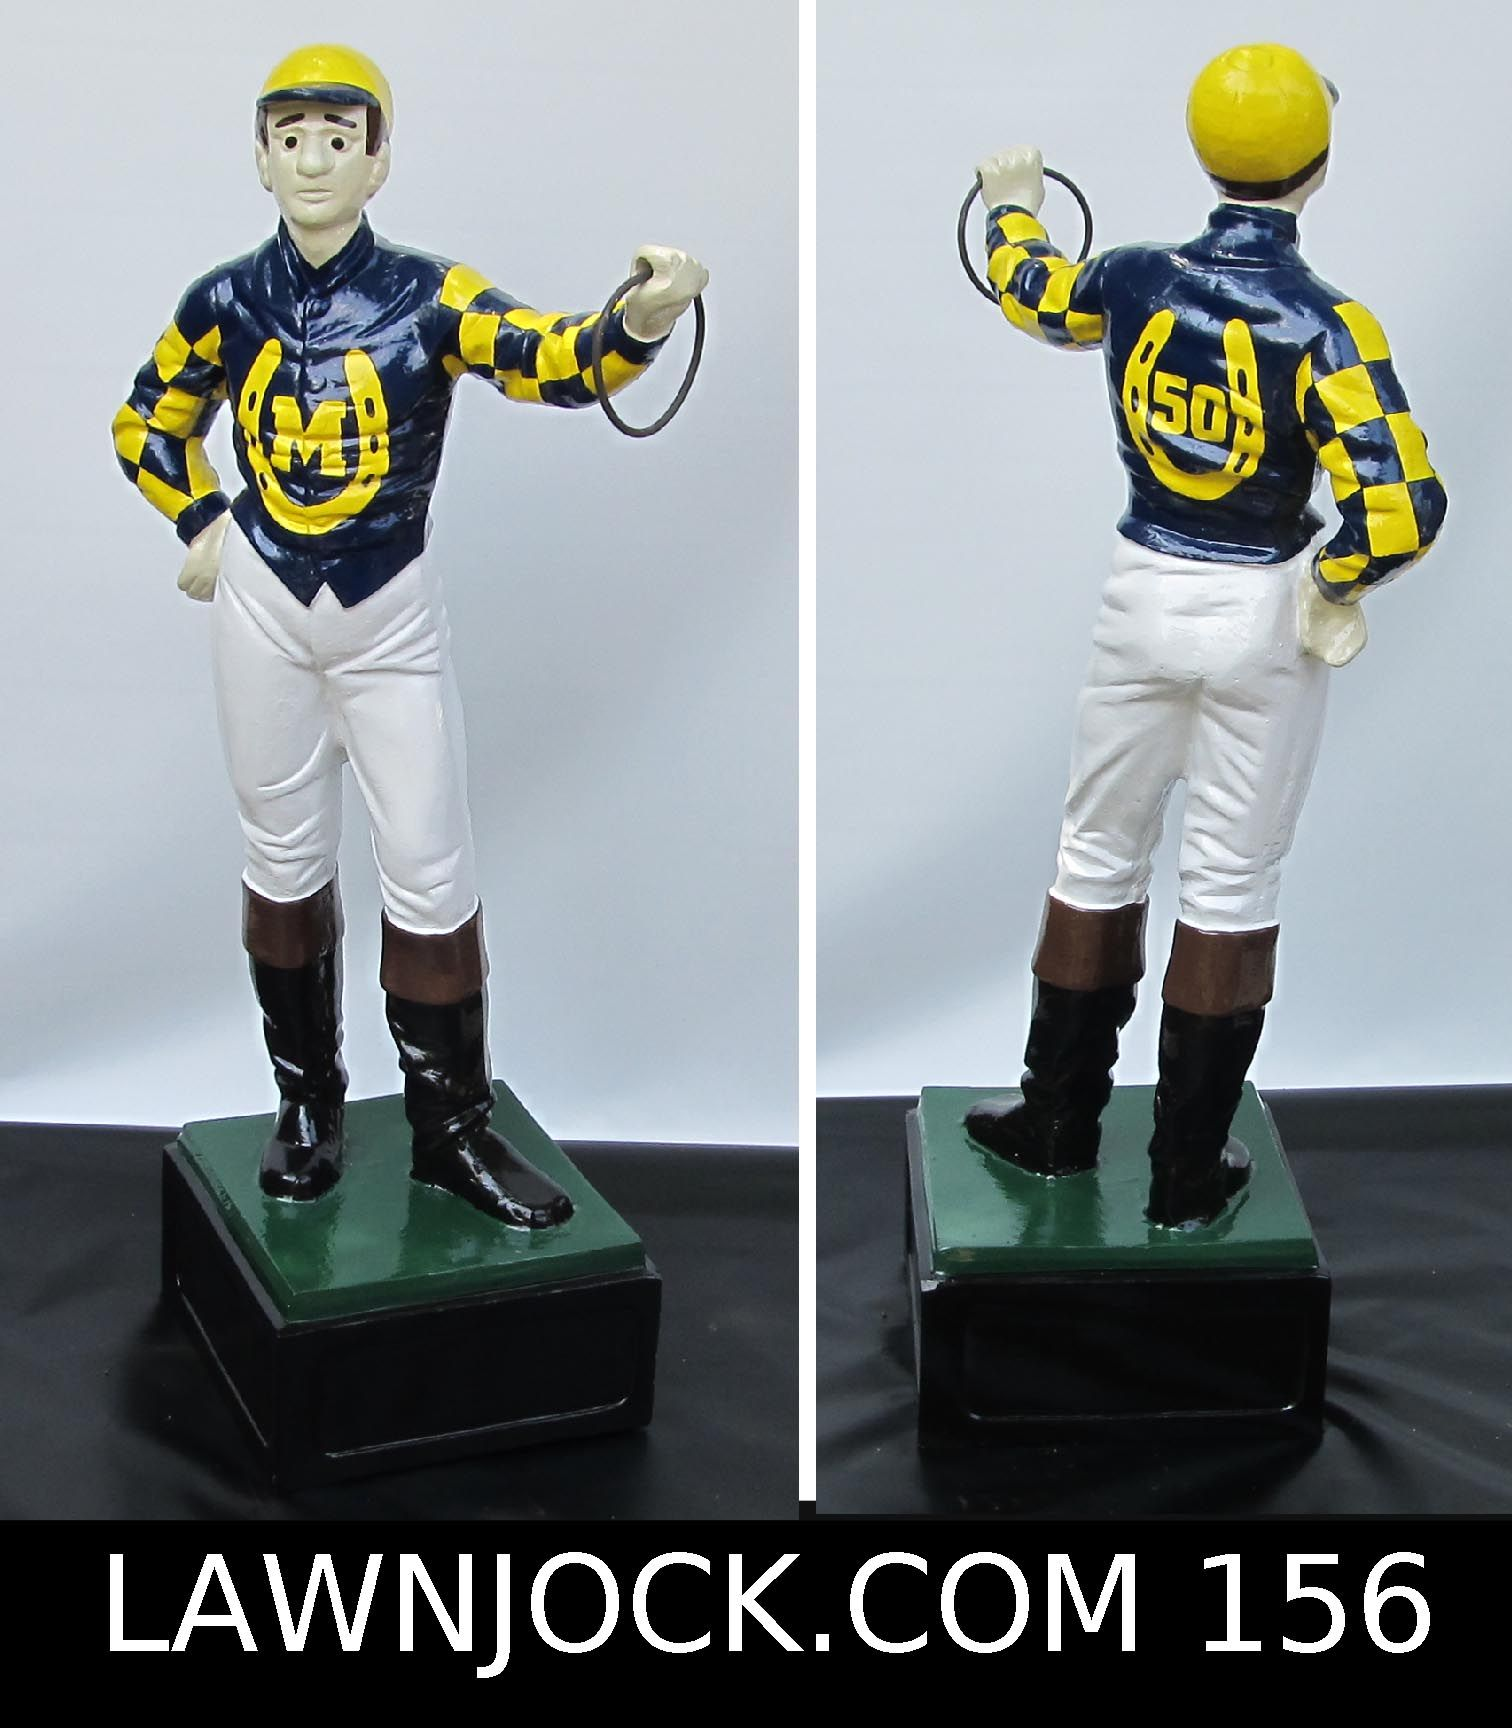 The traditional lawn jockey statue is taking back America's boring suburban neighborhoods one yard at a time. Your lawn is next! Want an REAL METAL jock professionally painted using 2 coats of high gloss enamel like this one shipped directly to your mansion in about 3 weeks? Visit lawnjock.com for a price quote today and reference custom example #156.